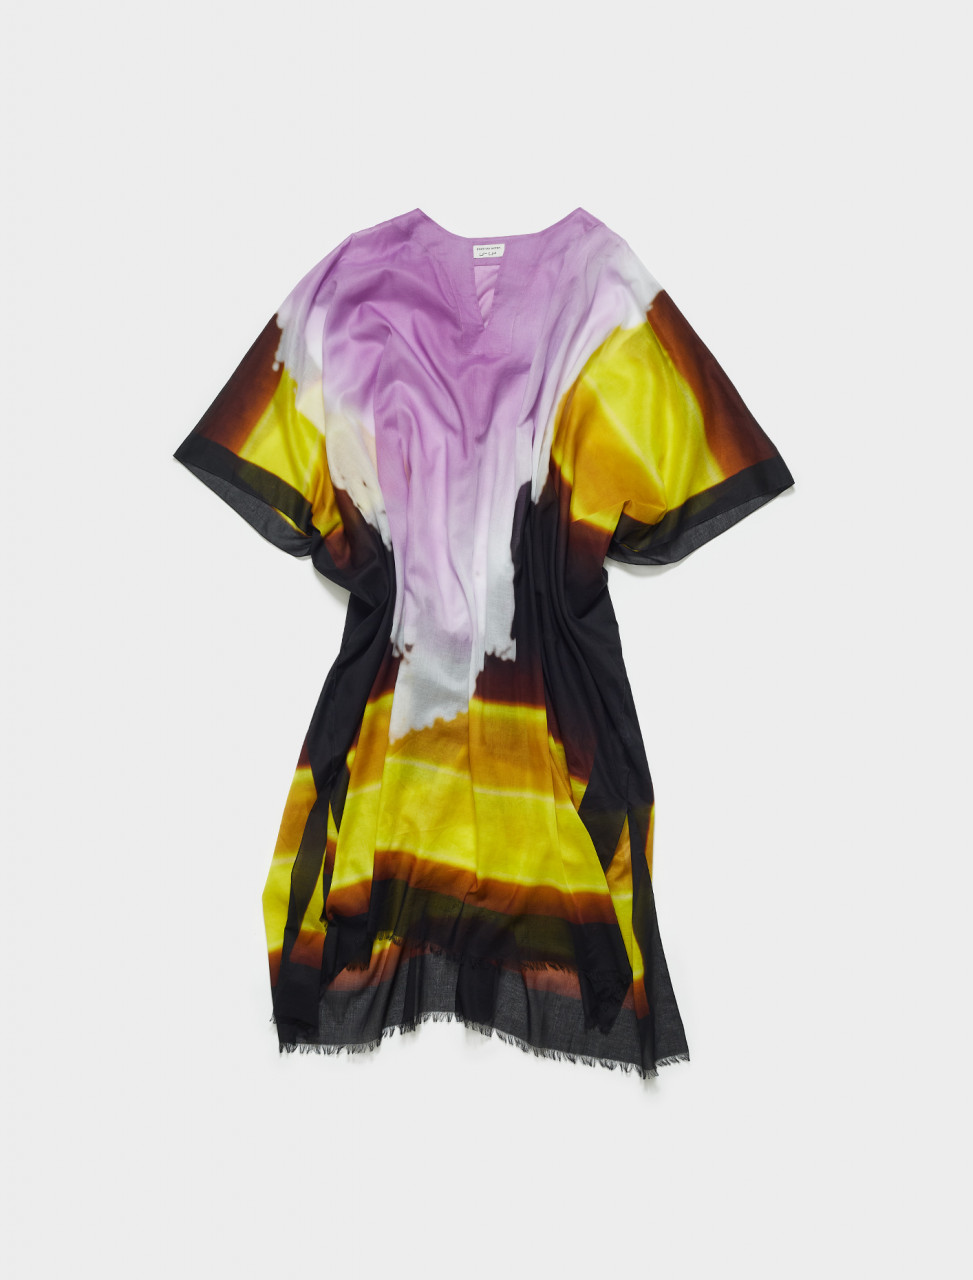 211-20717-2007-202 DRIES VAN NOTEN CARLAND LEN LYE PRINT TUNIC IN YELLOW